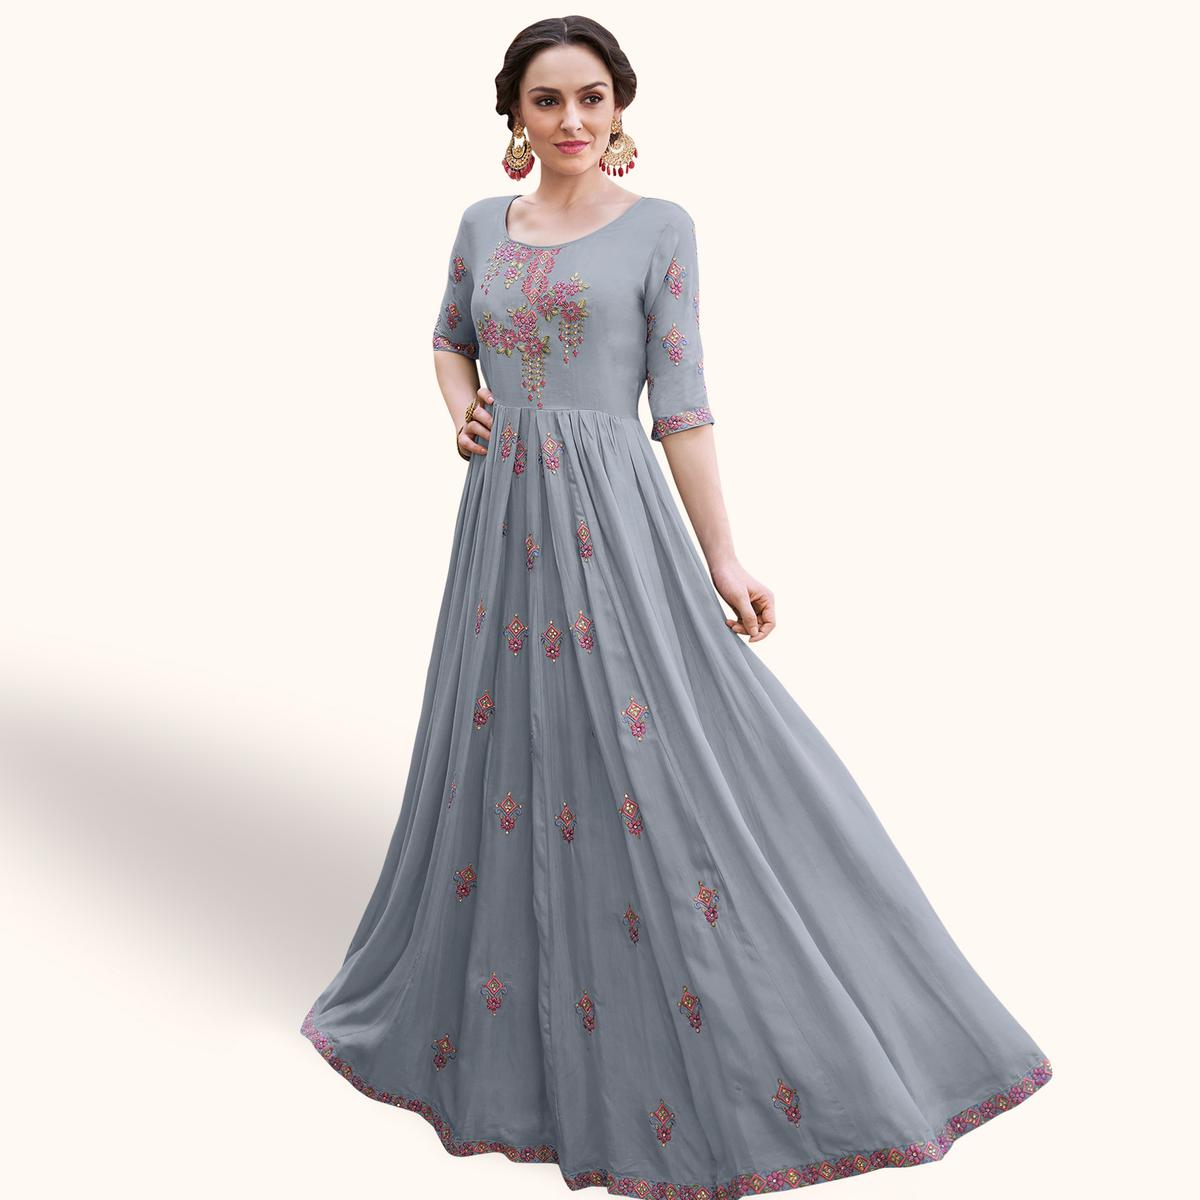 Mesmeric Grey Colored Party Wear Embroidered Heavy Rayon Gown